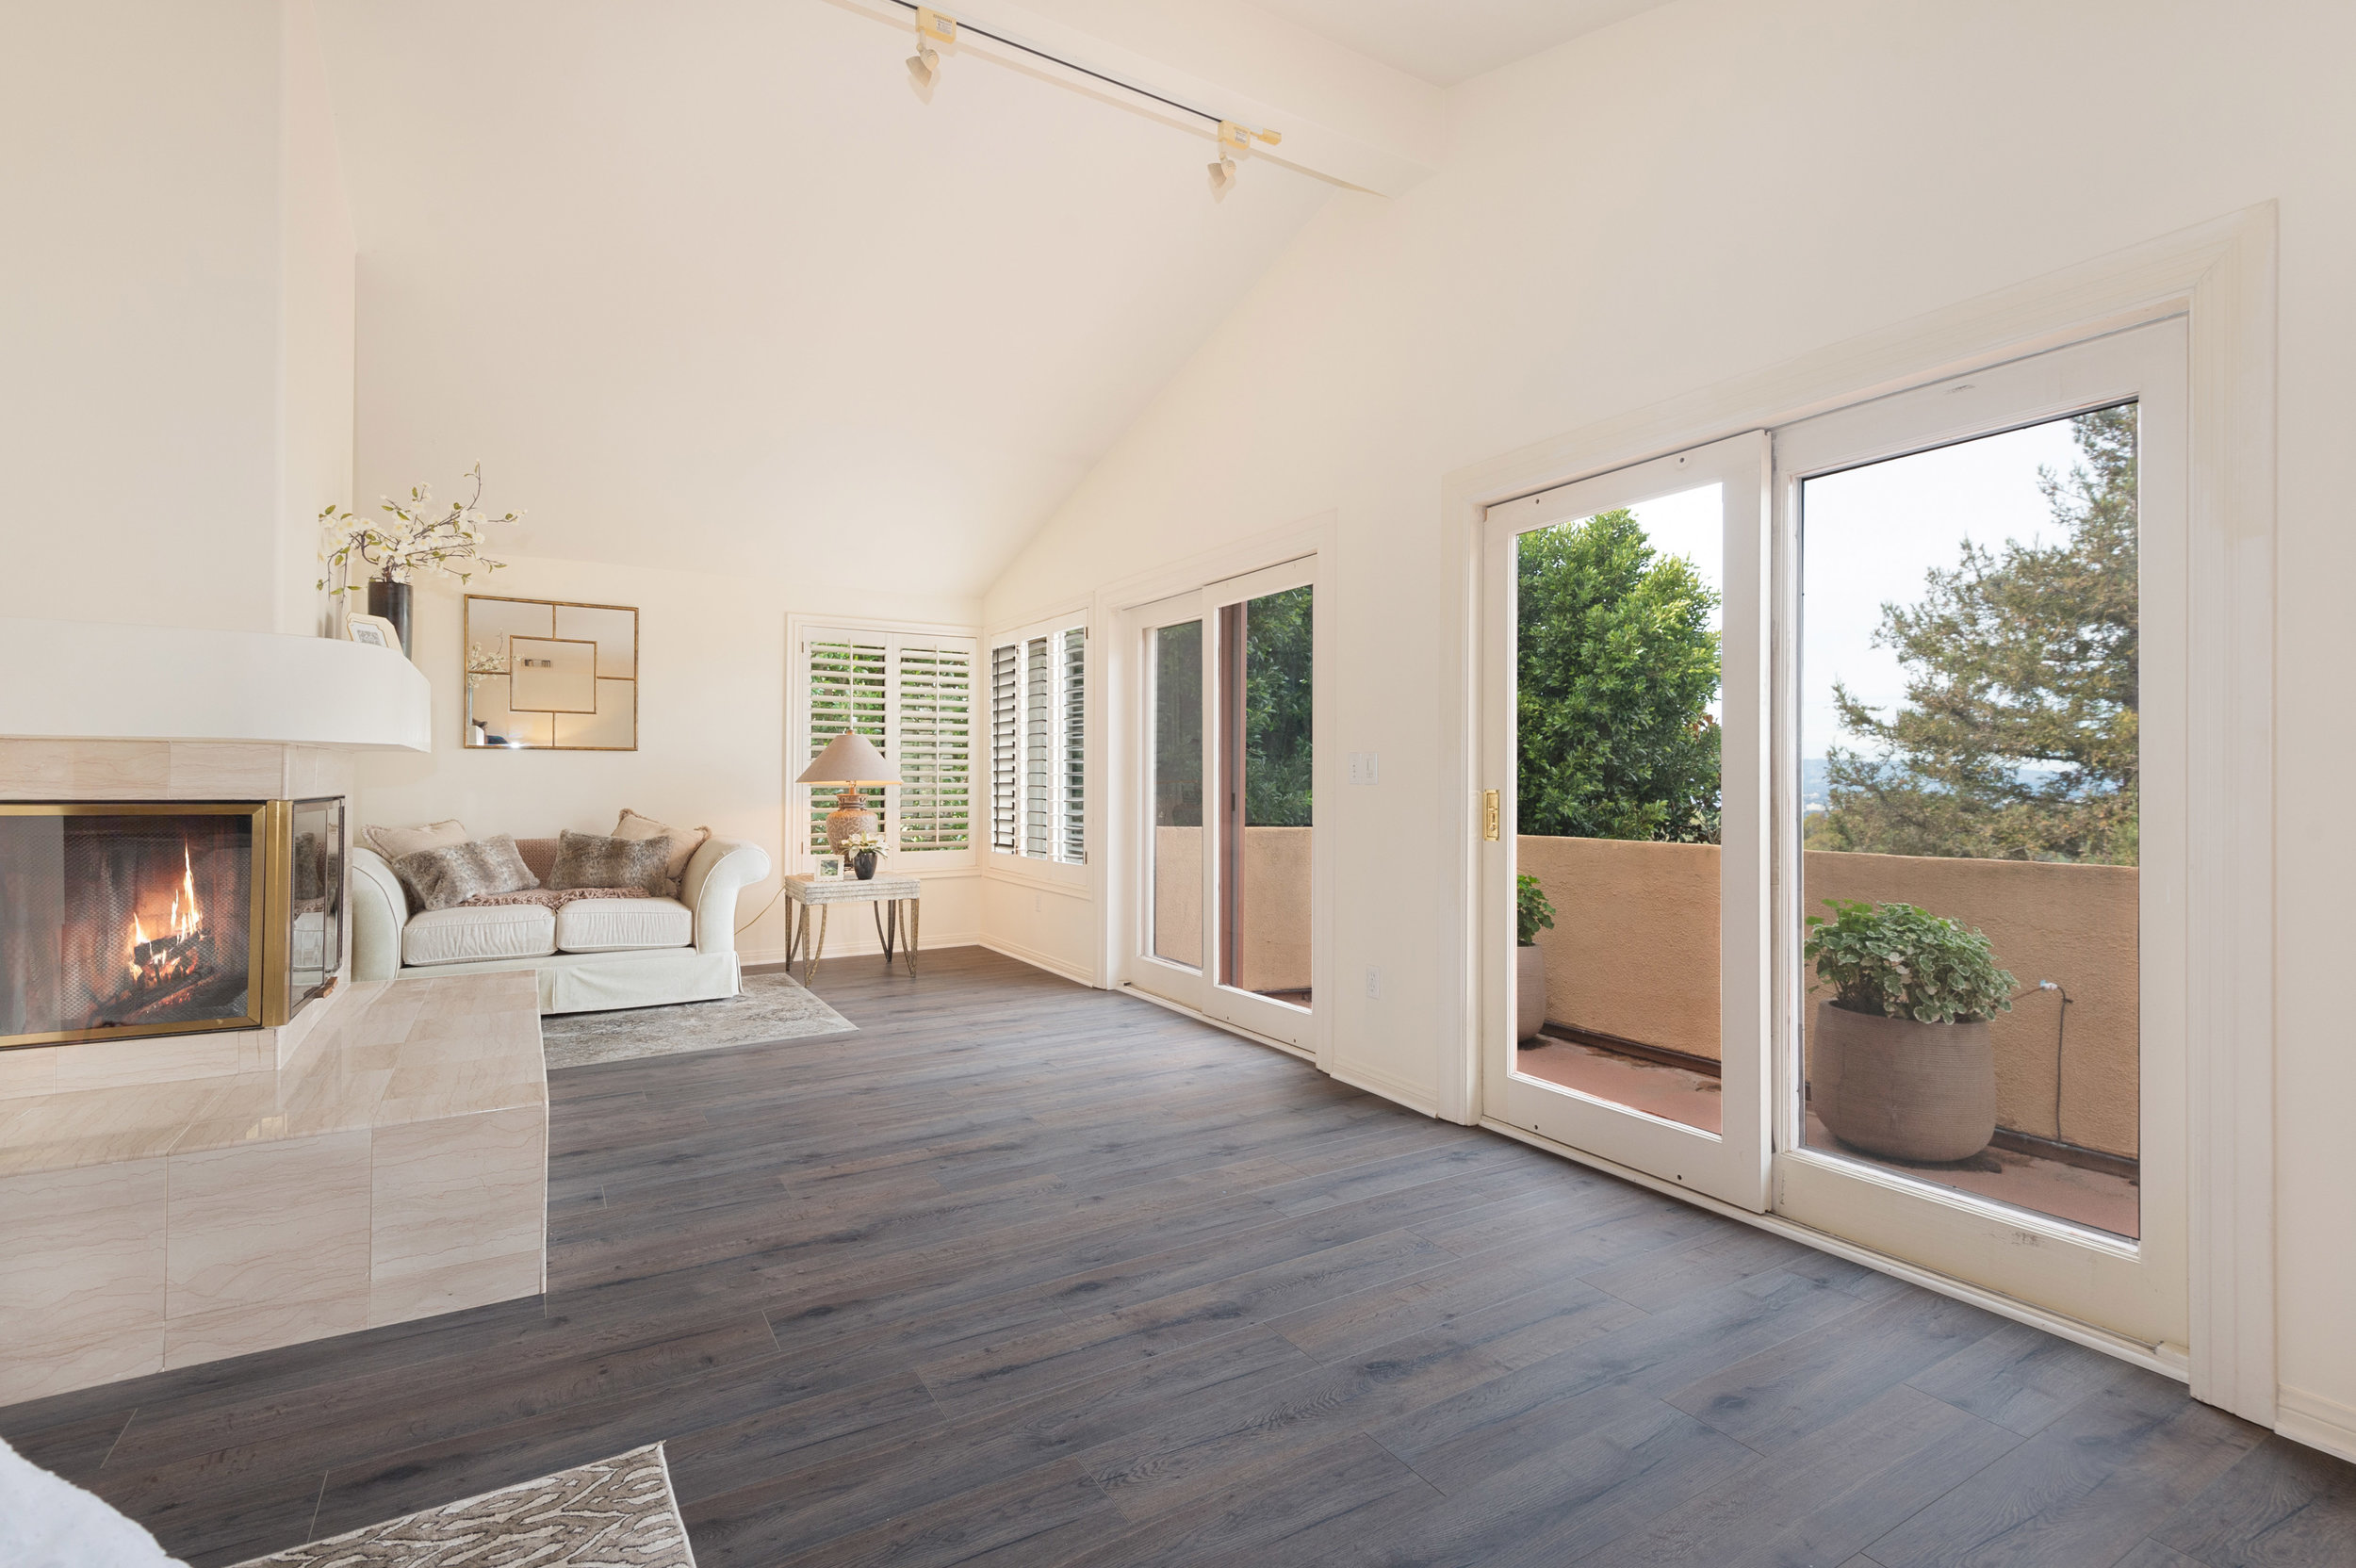 015 Master Bedroom 12027 Talus Place Beverly Hills 90210 For Sale Lease The Malibu Life Team Luxury Real Estate.jpg